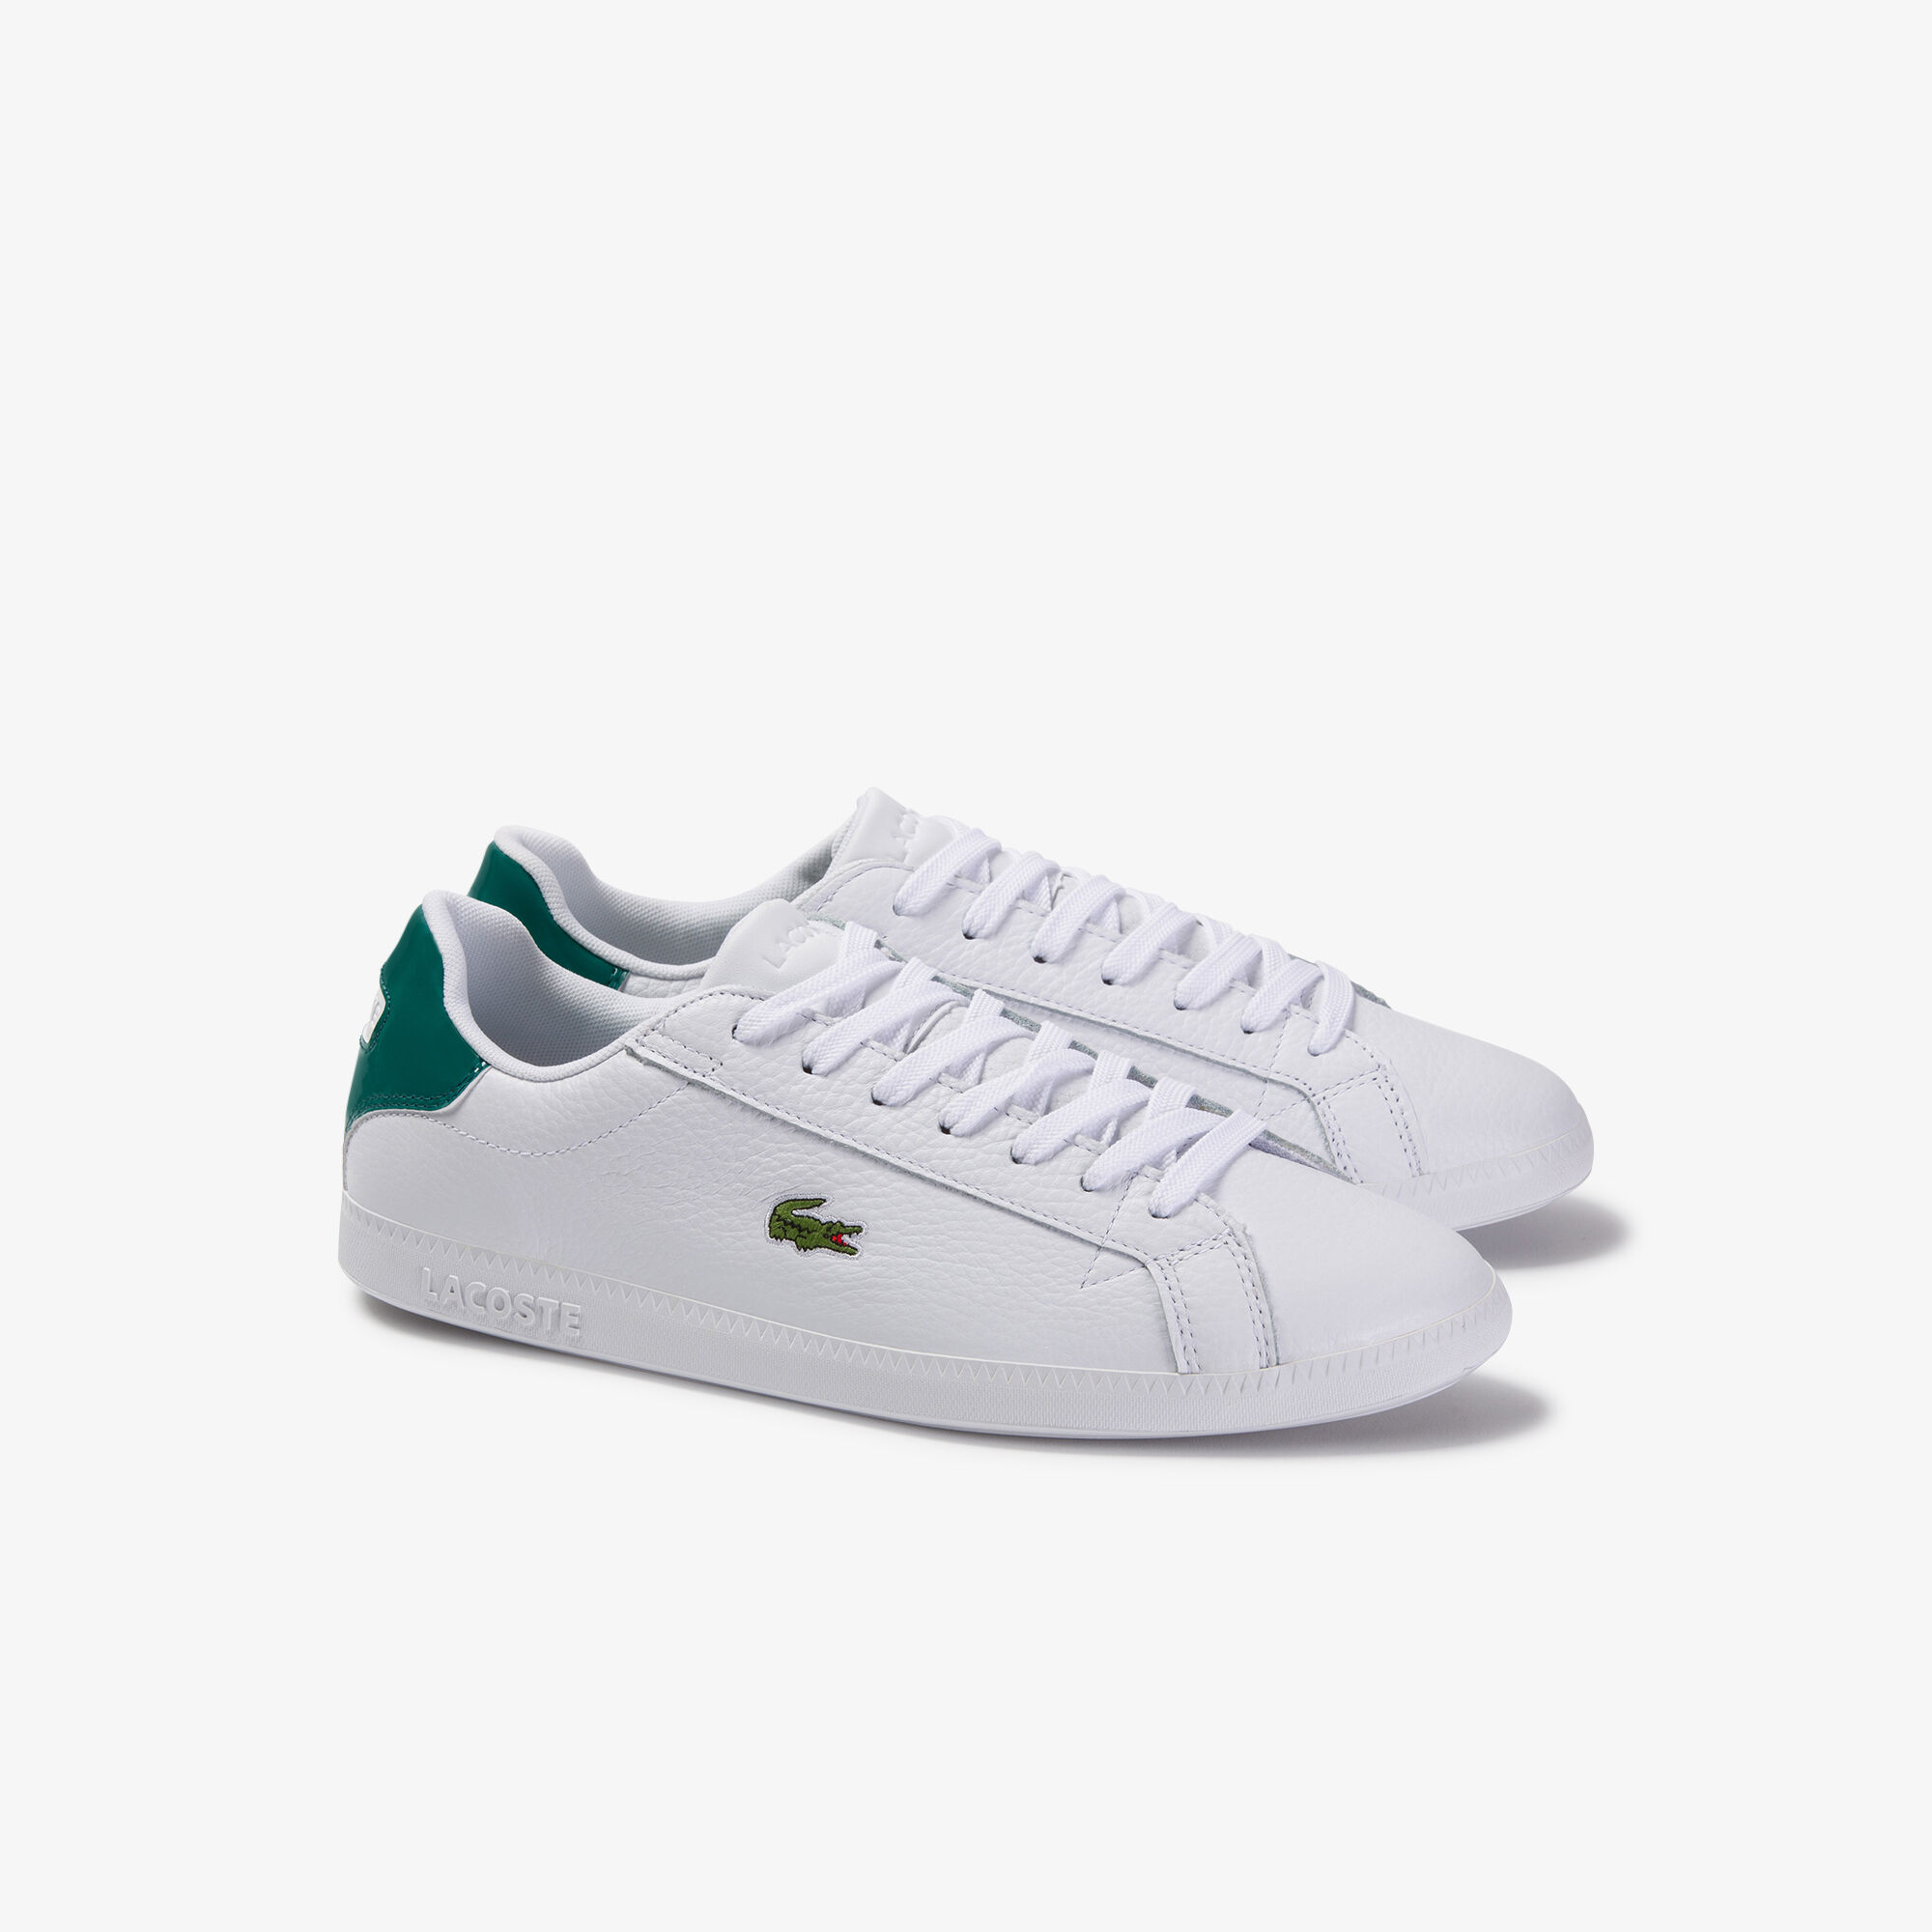 Men's Graduate Tumbled Leather and Synthetic Sneakers